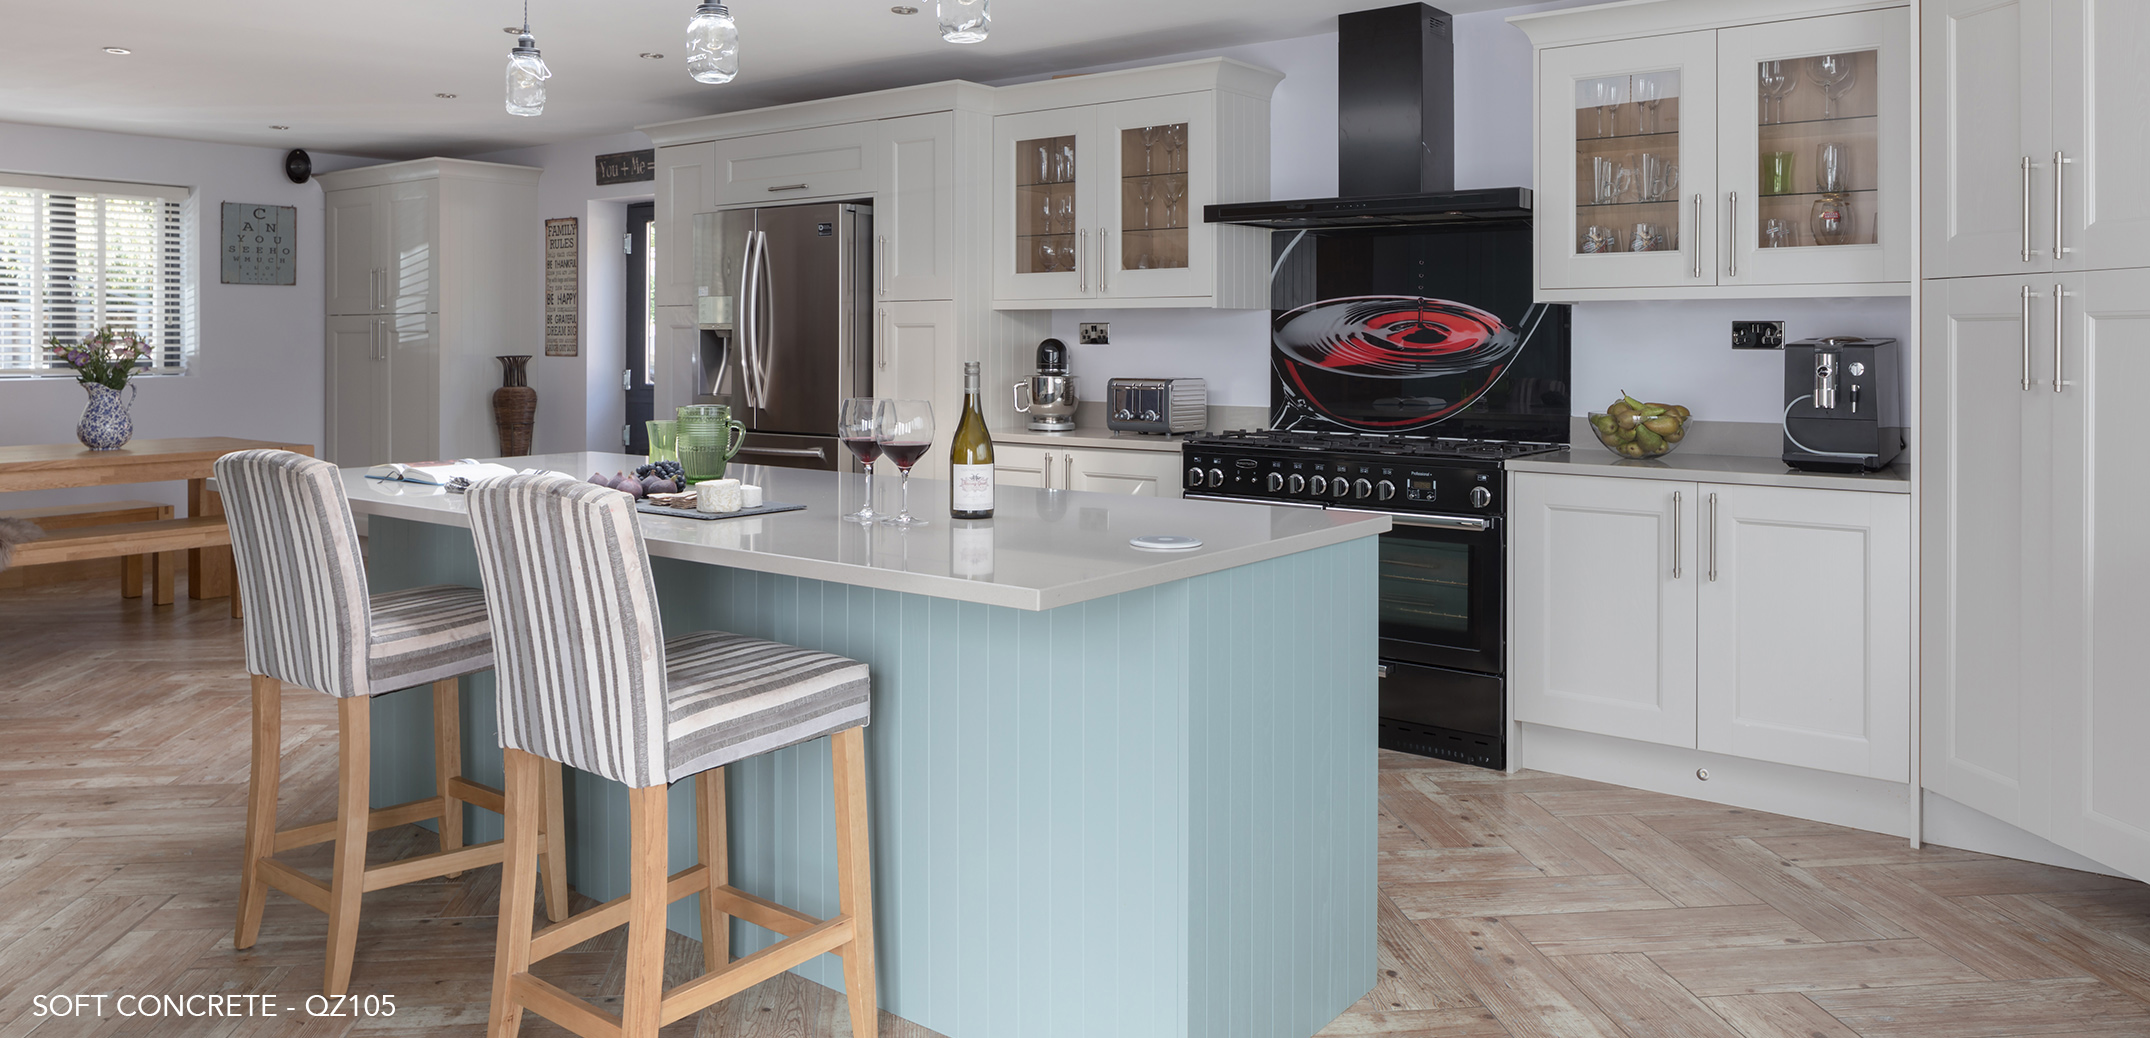 Traditional Elegance with some help from CRL Quartz